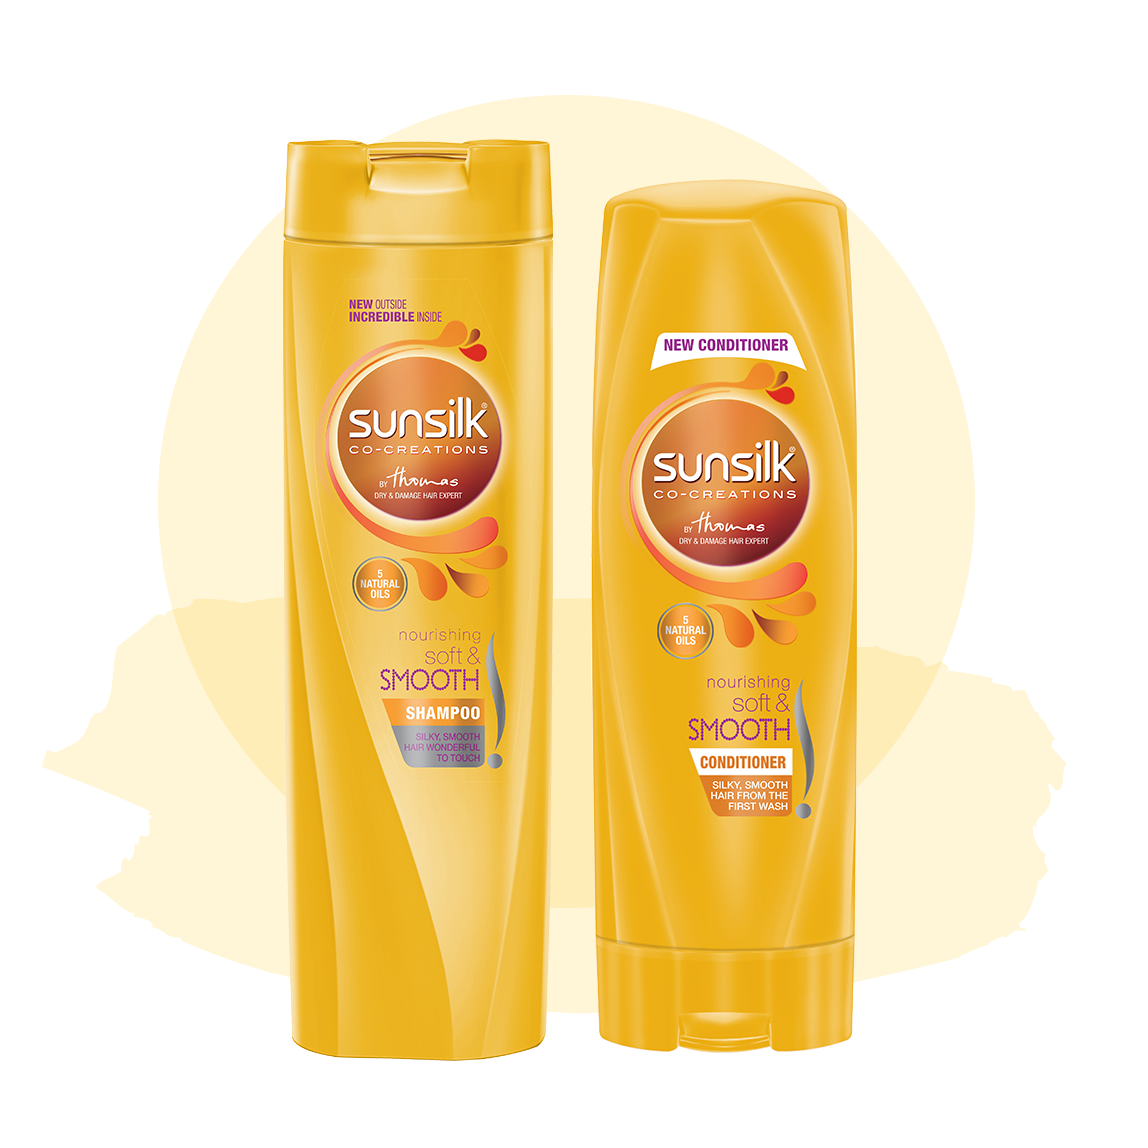 Sunsilk Pakistan Homepage | Your hair on your side